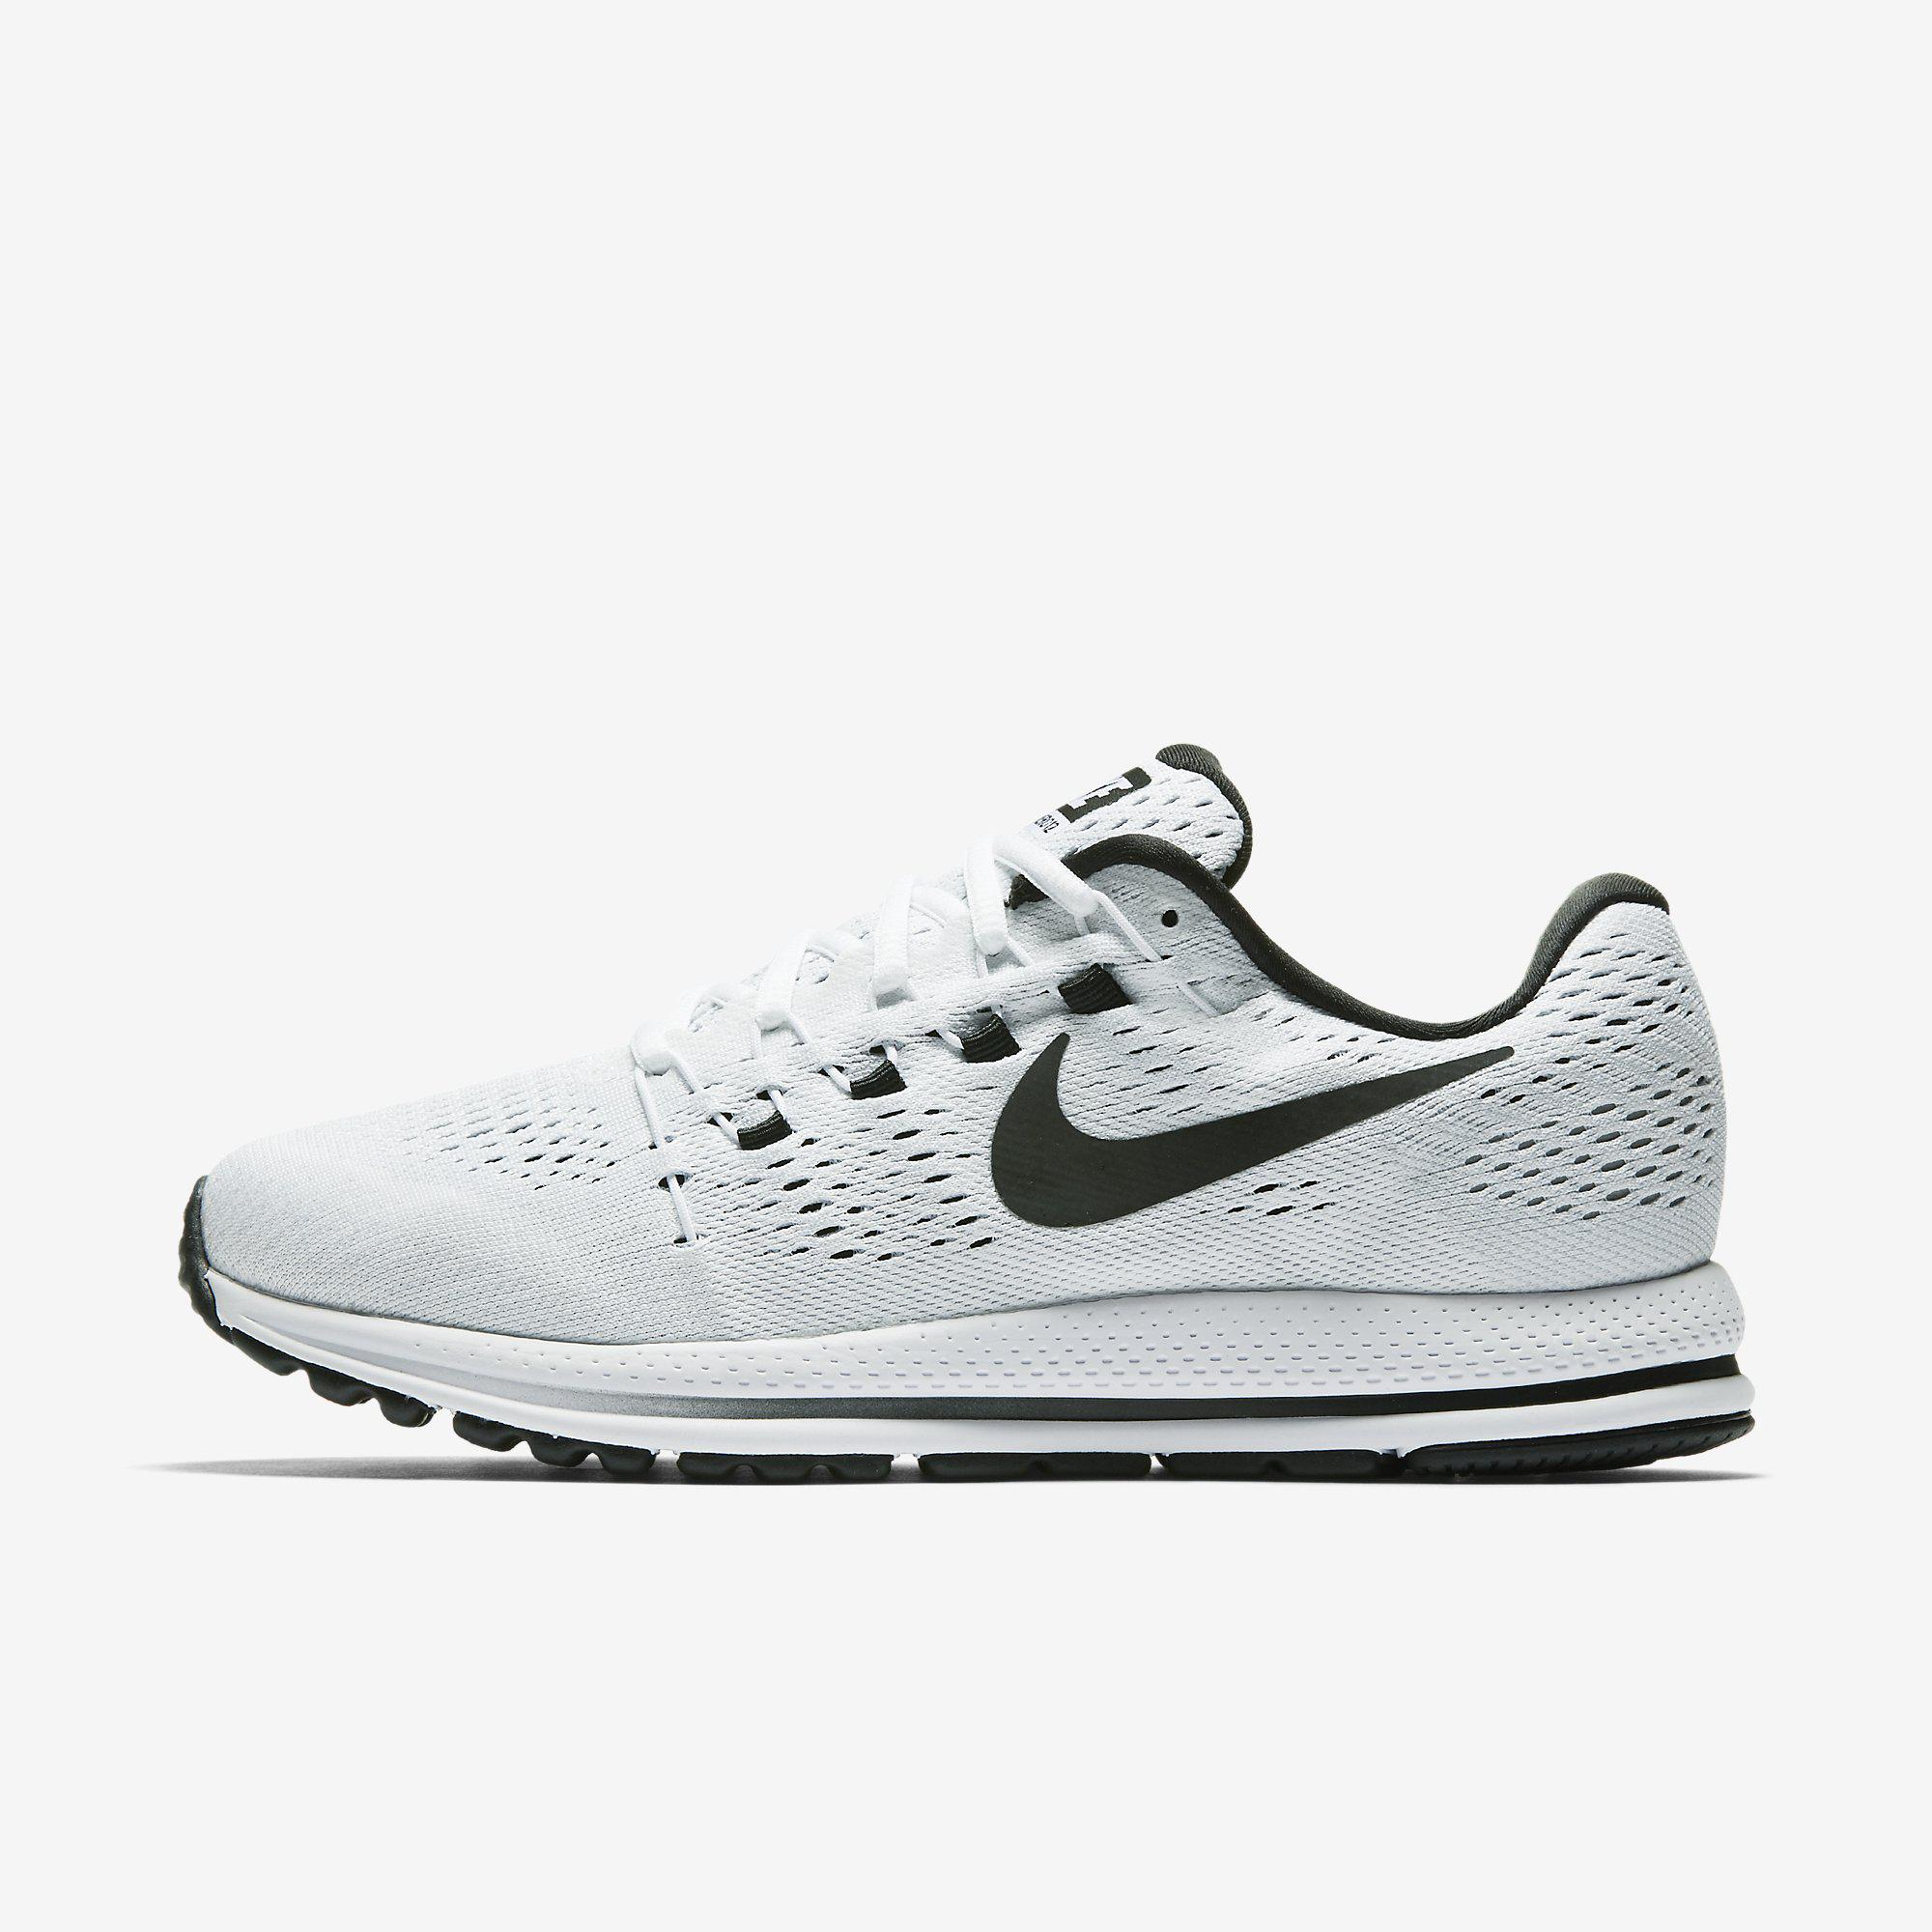 Nike Mens Air Zoom Vomero 12 Running Shoes - White/Black